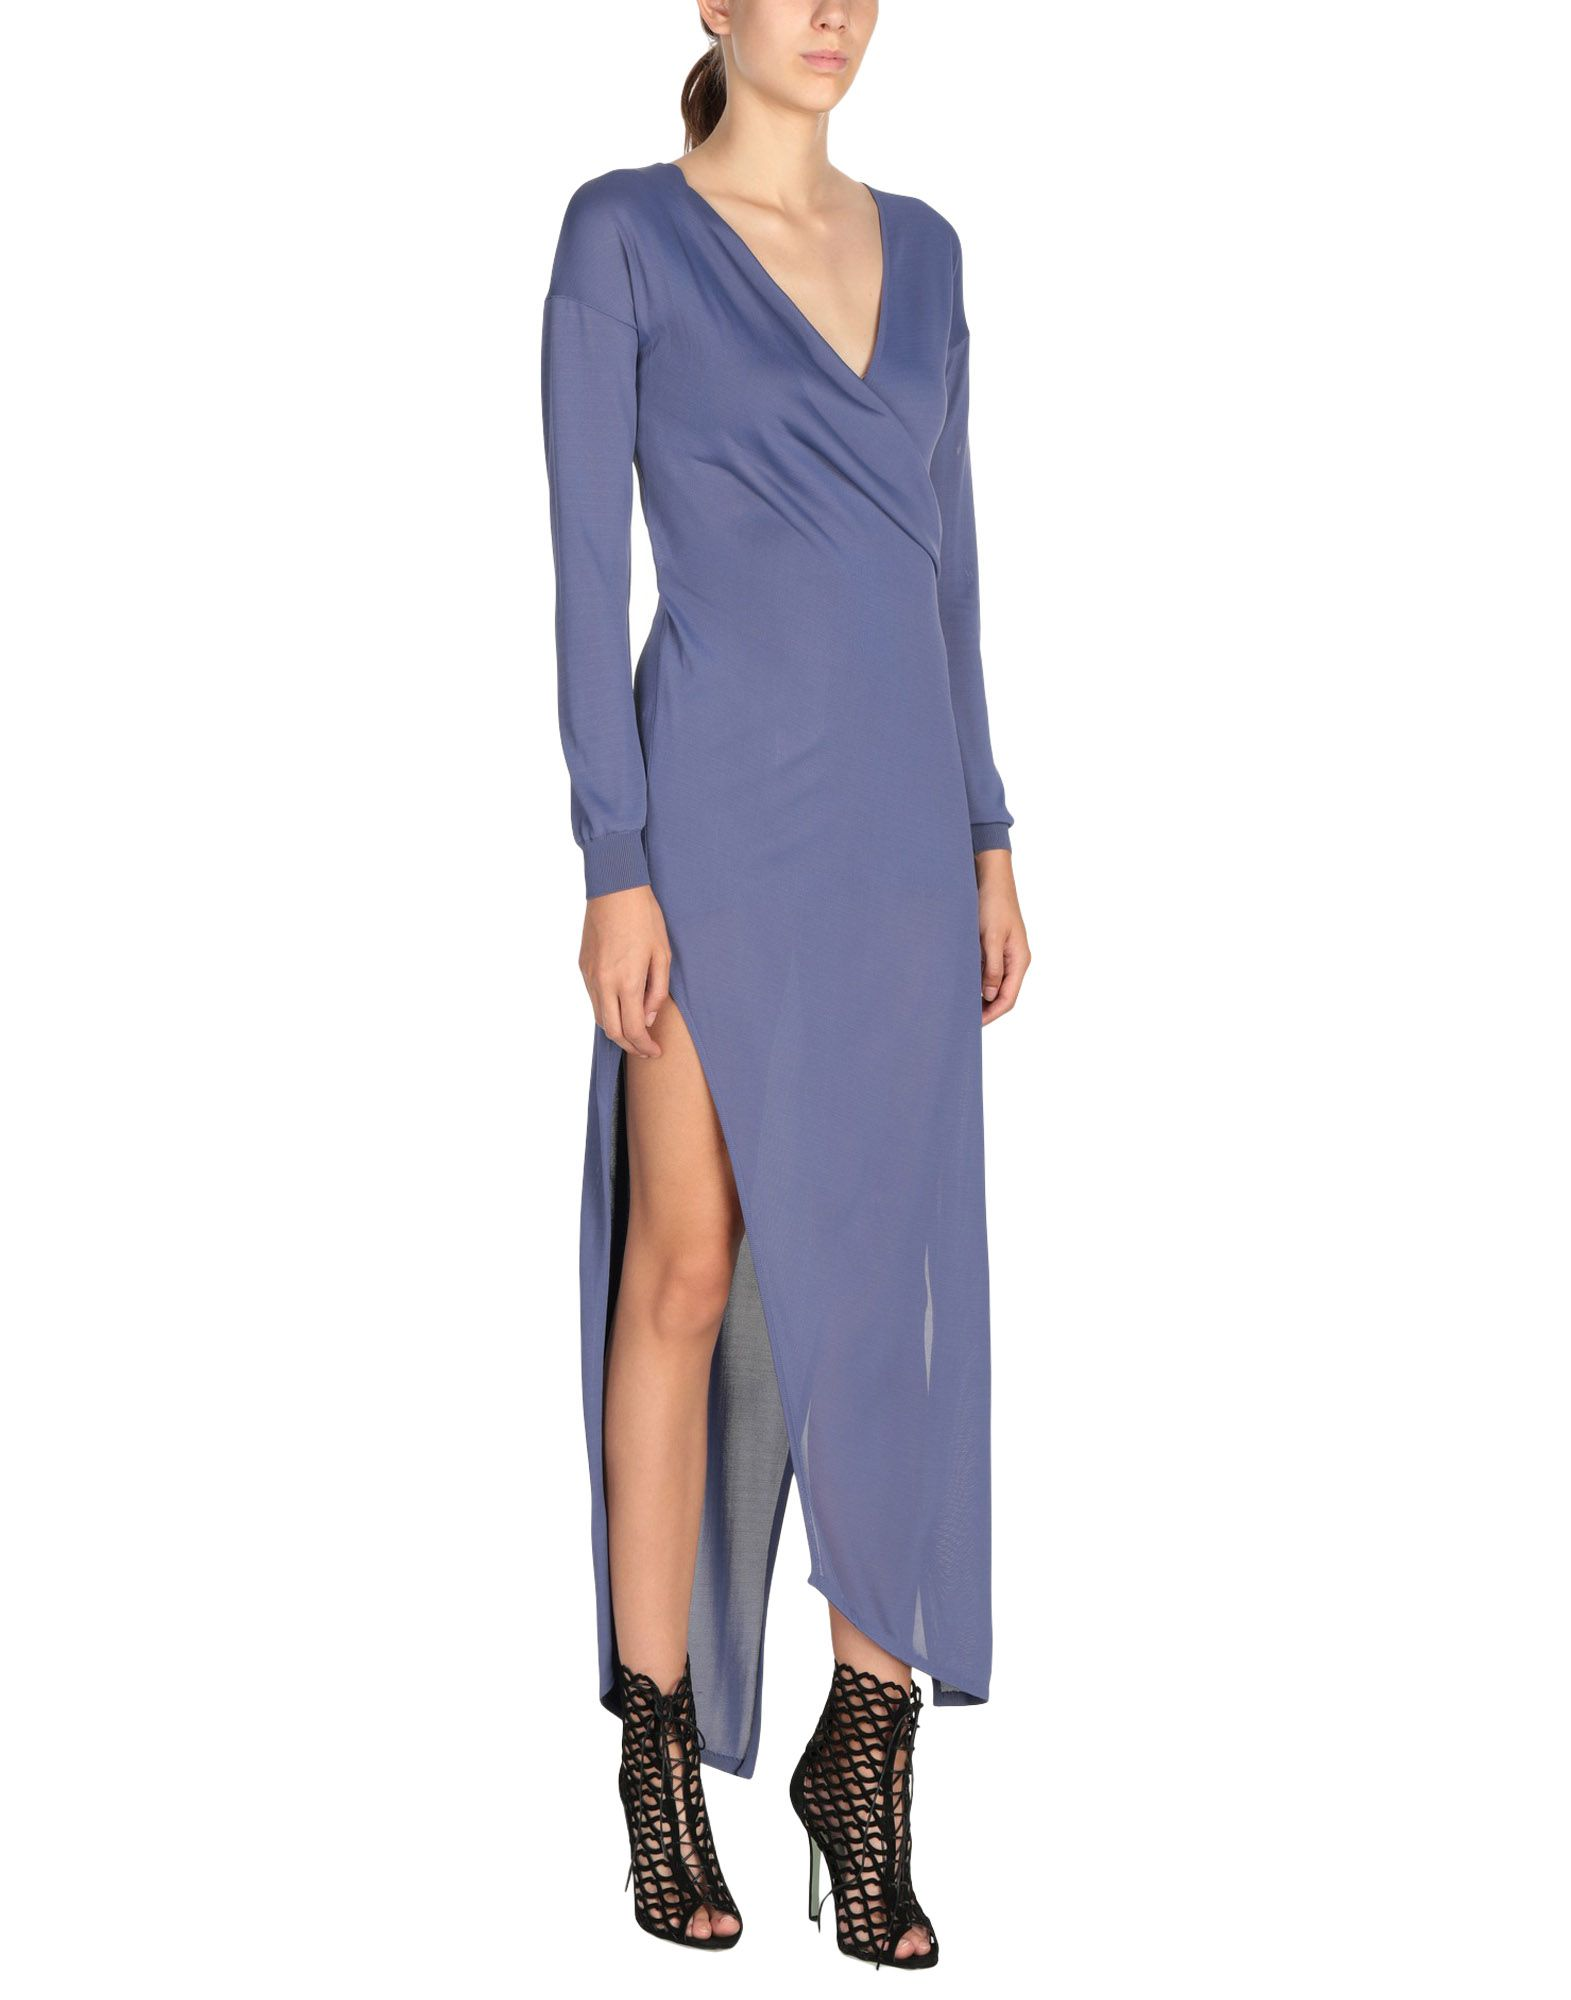 HALSTON Long Dress in Mauve